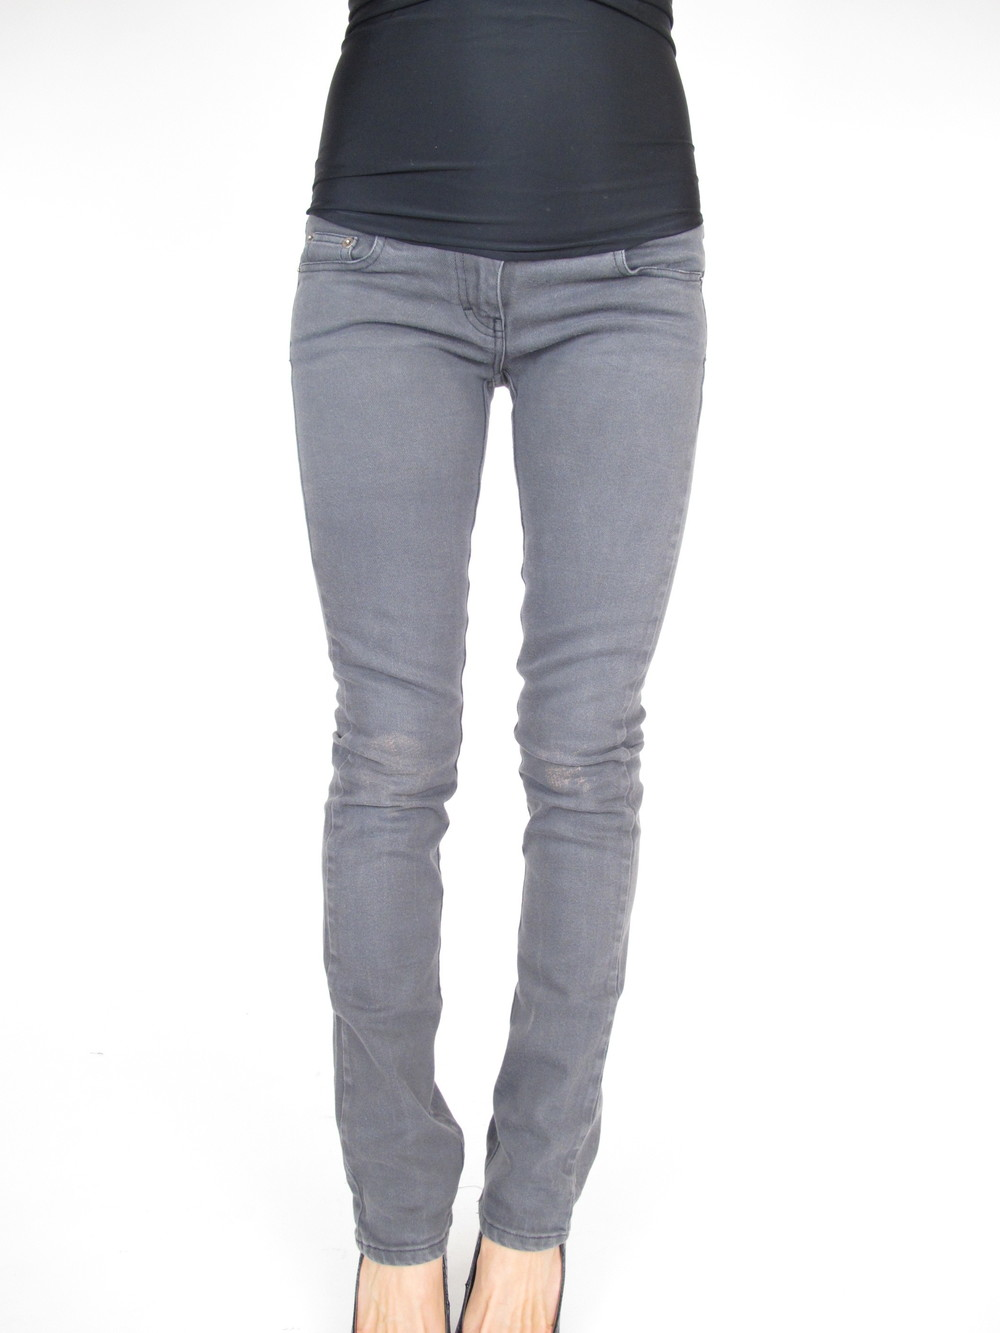 d452ffccdf736 Sass and Bide Straight Leg Maternity Jeans 27 x 33 — She & Wolf